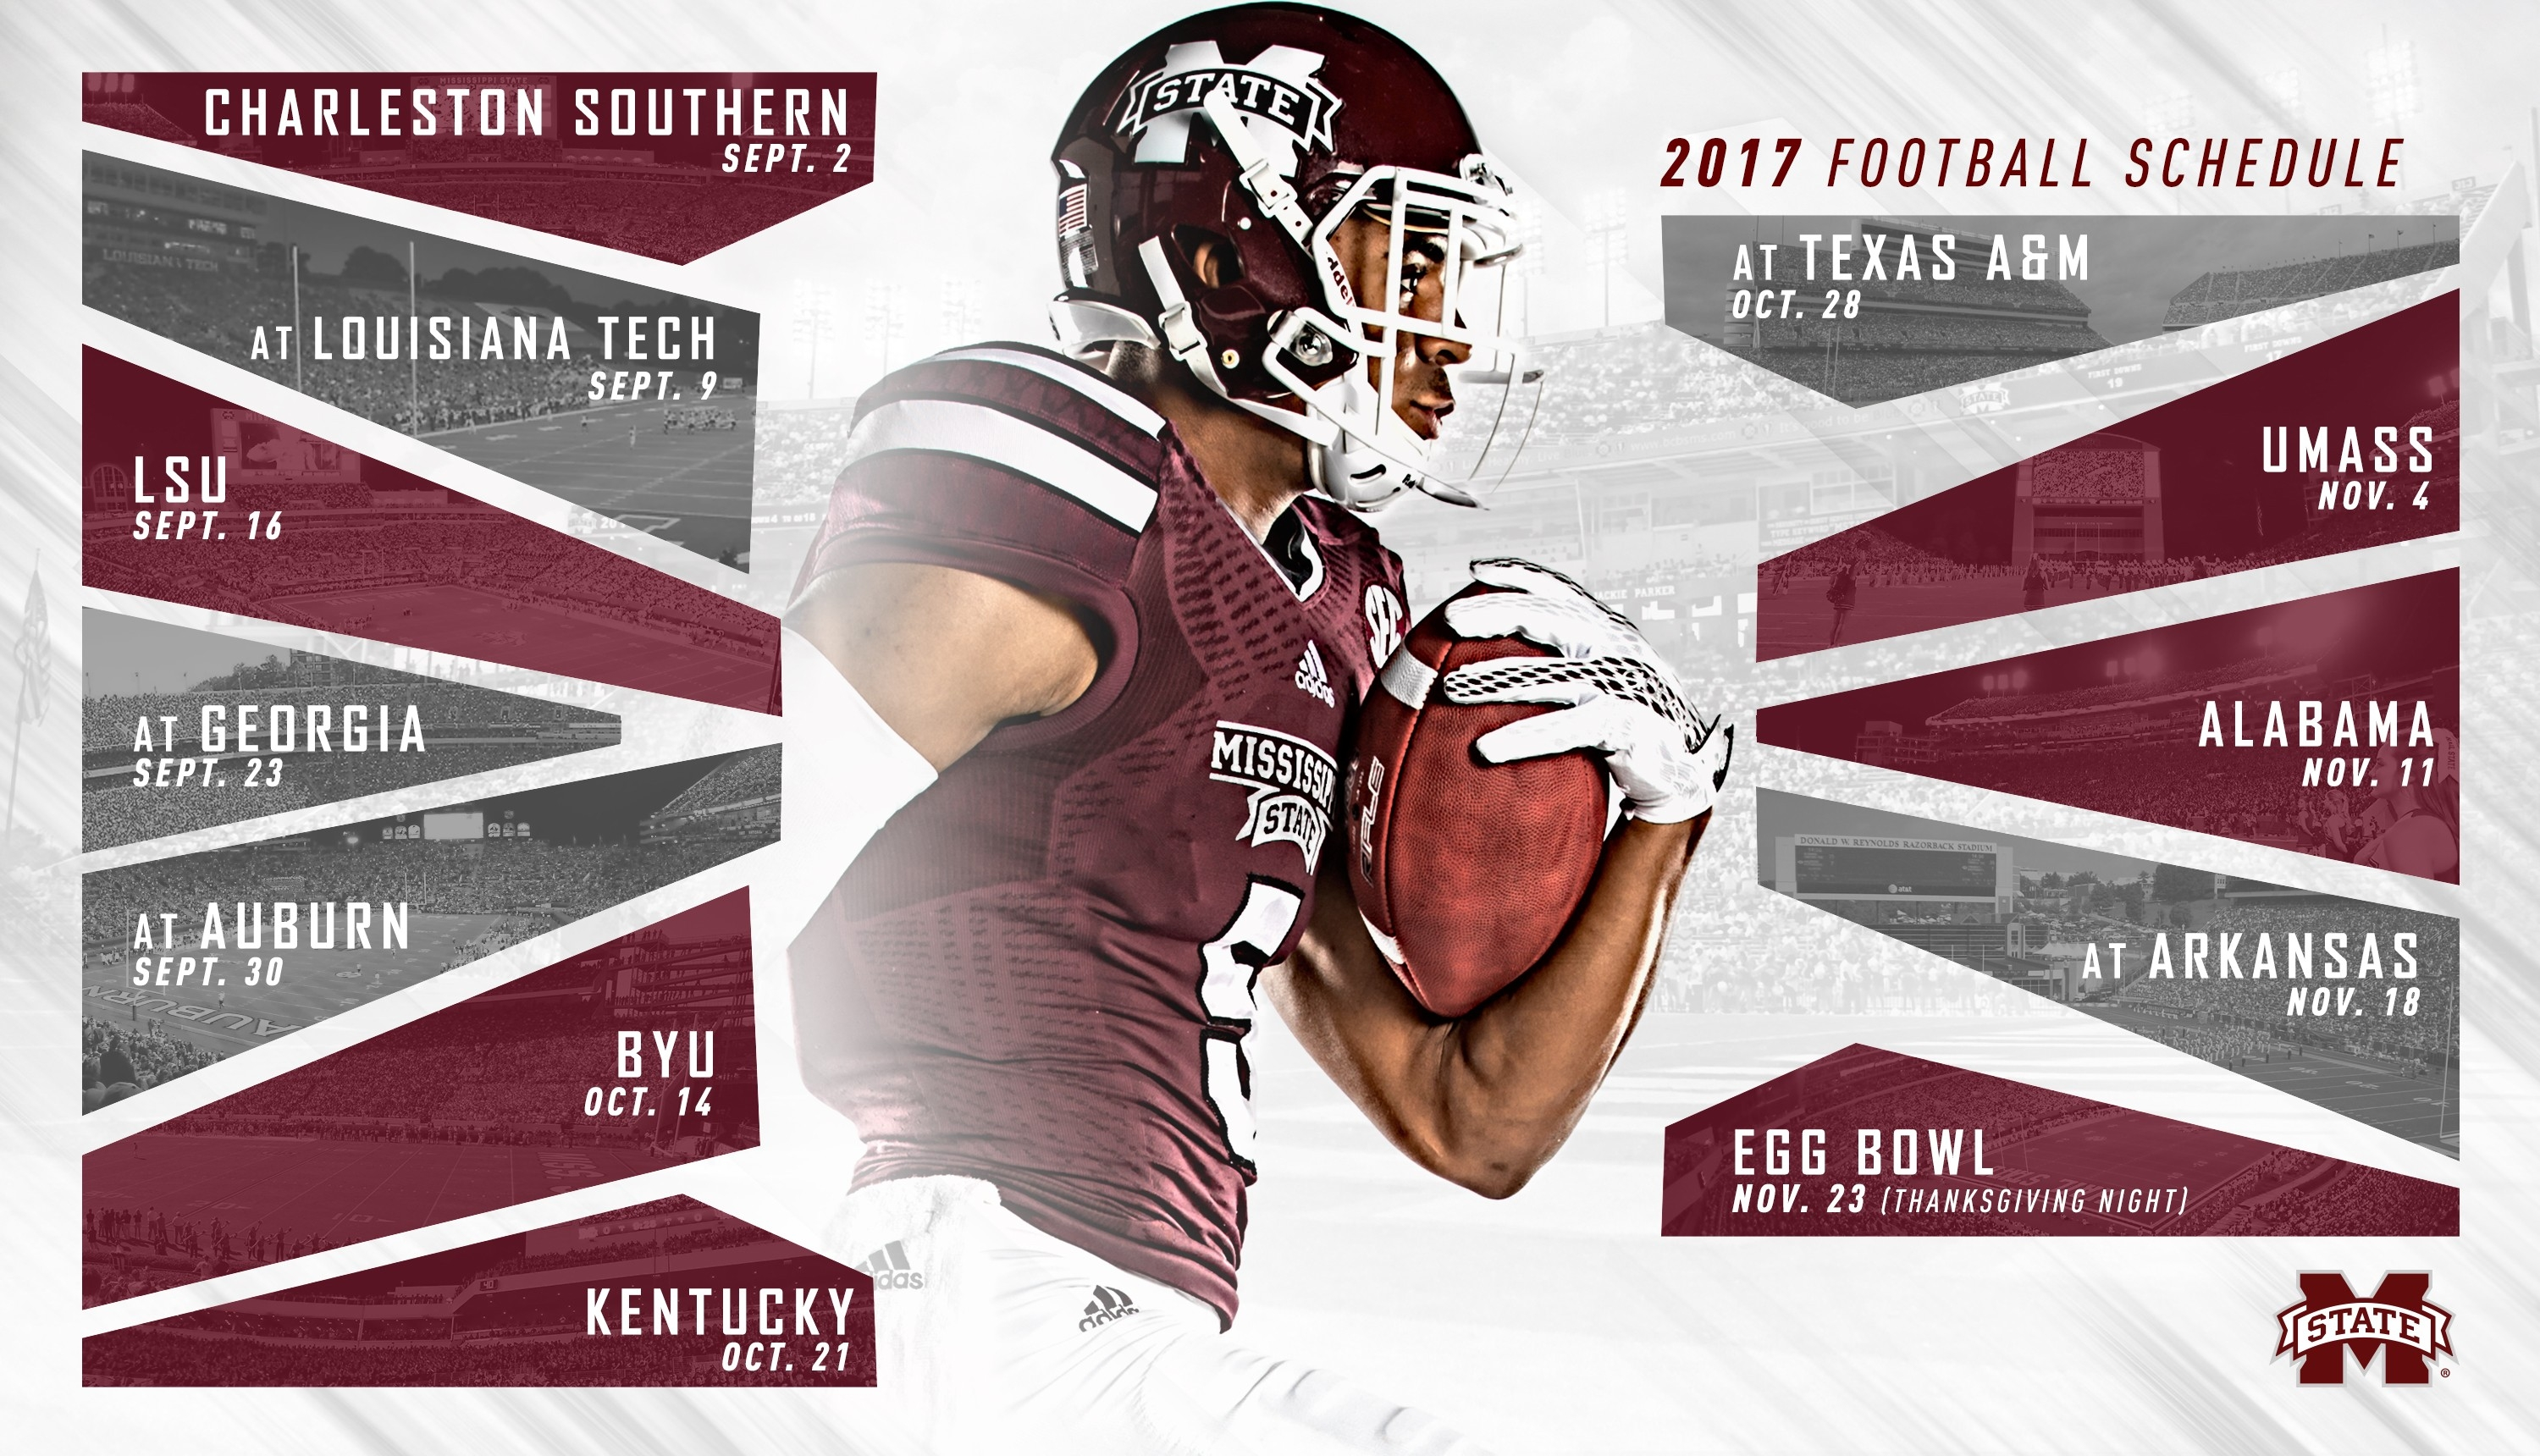 2017 Msu Football Schedule Unveiled, Egg Bowl To Return To in Mississippi State Football Schedule 48113